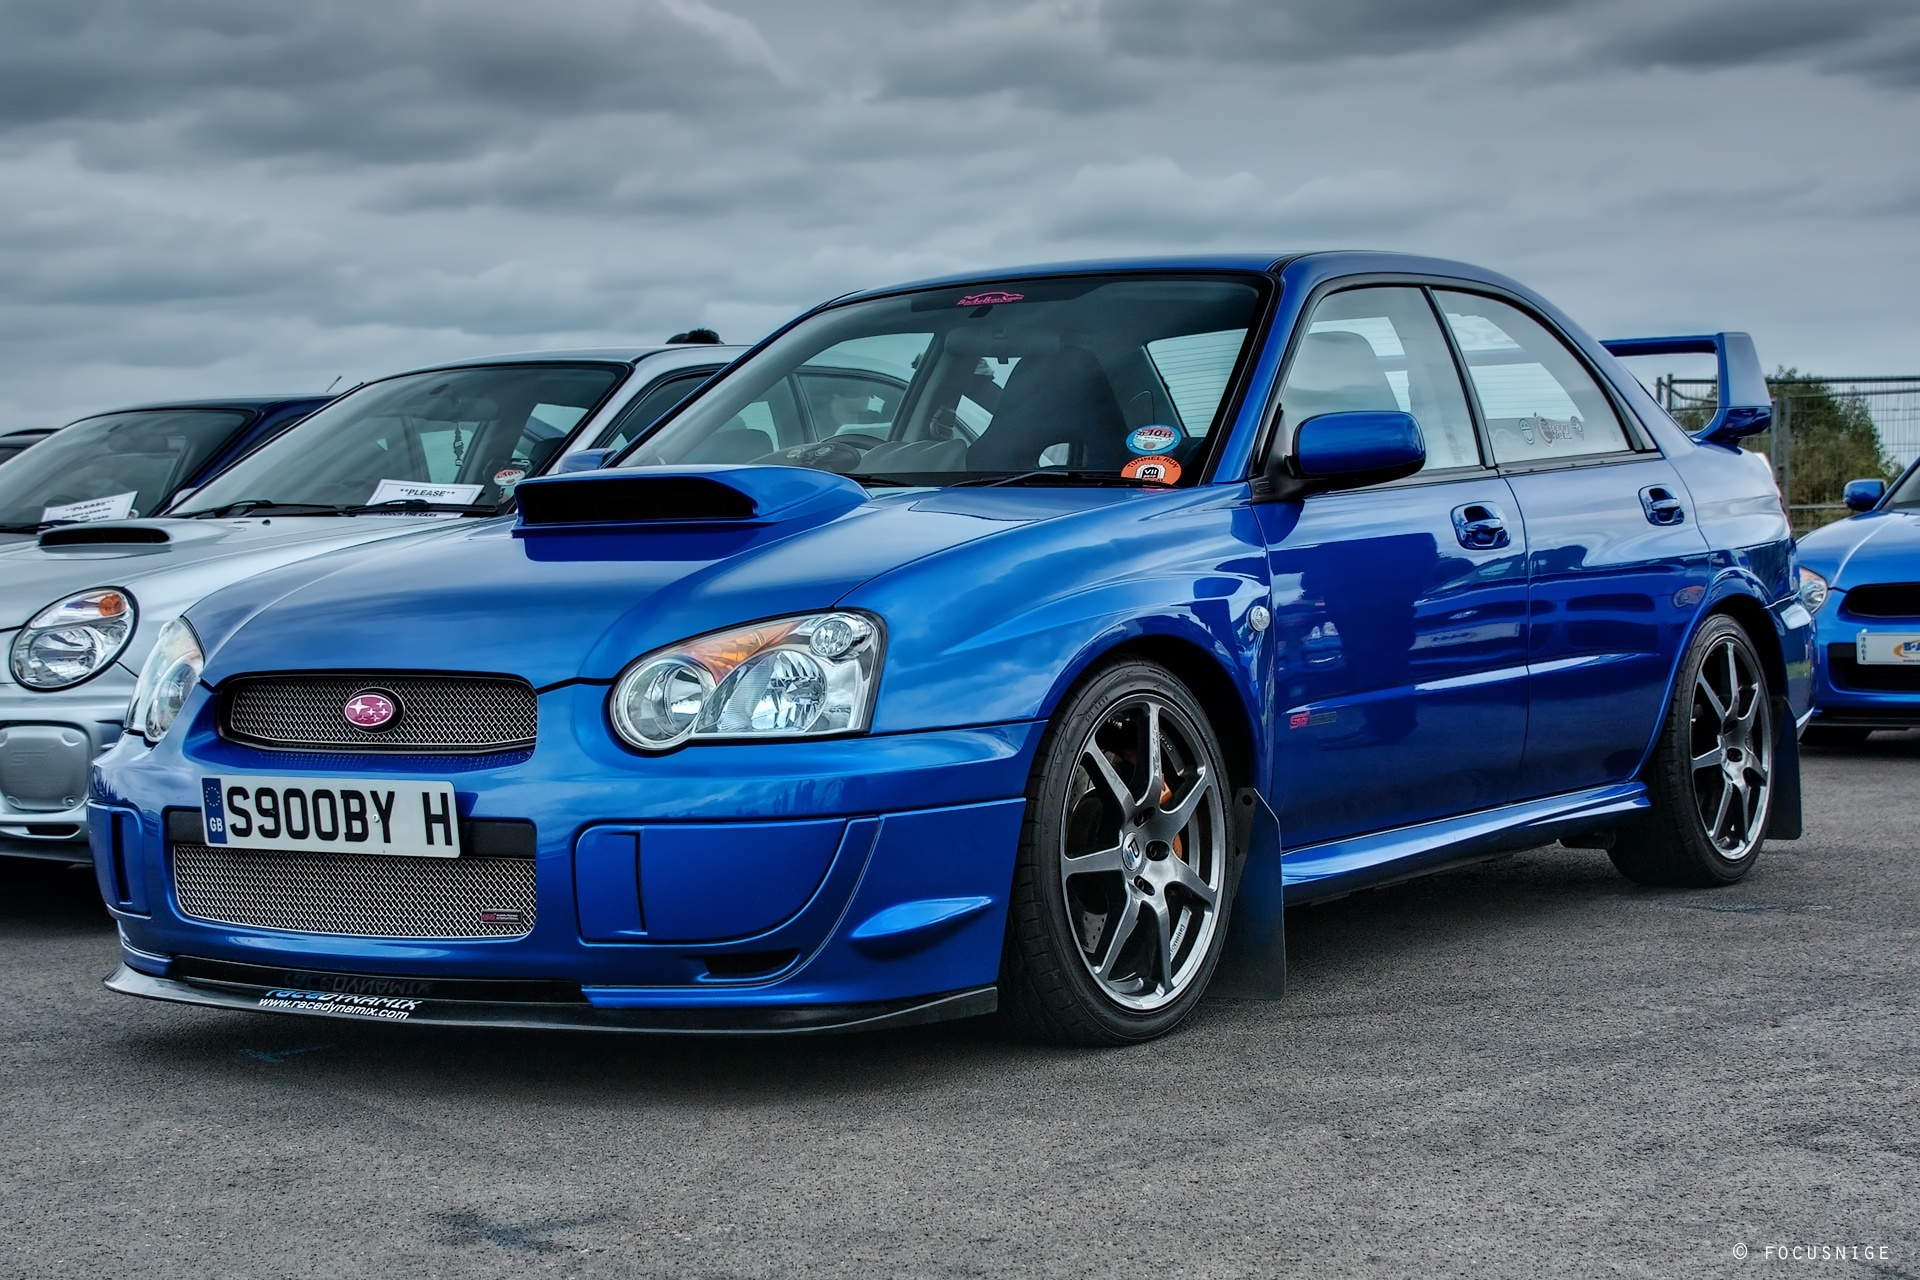 cars subaru impreza wrx HD Wallpaper